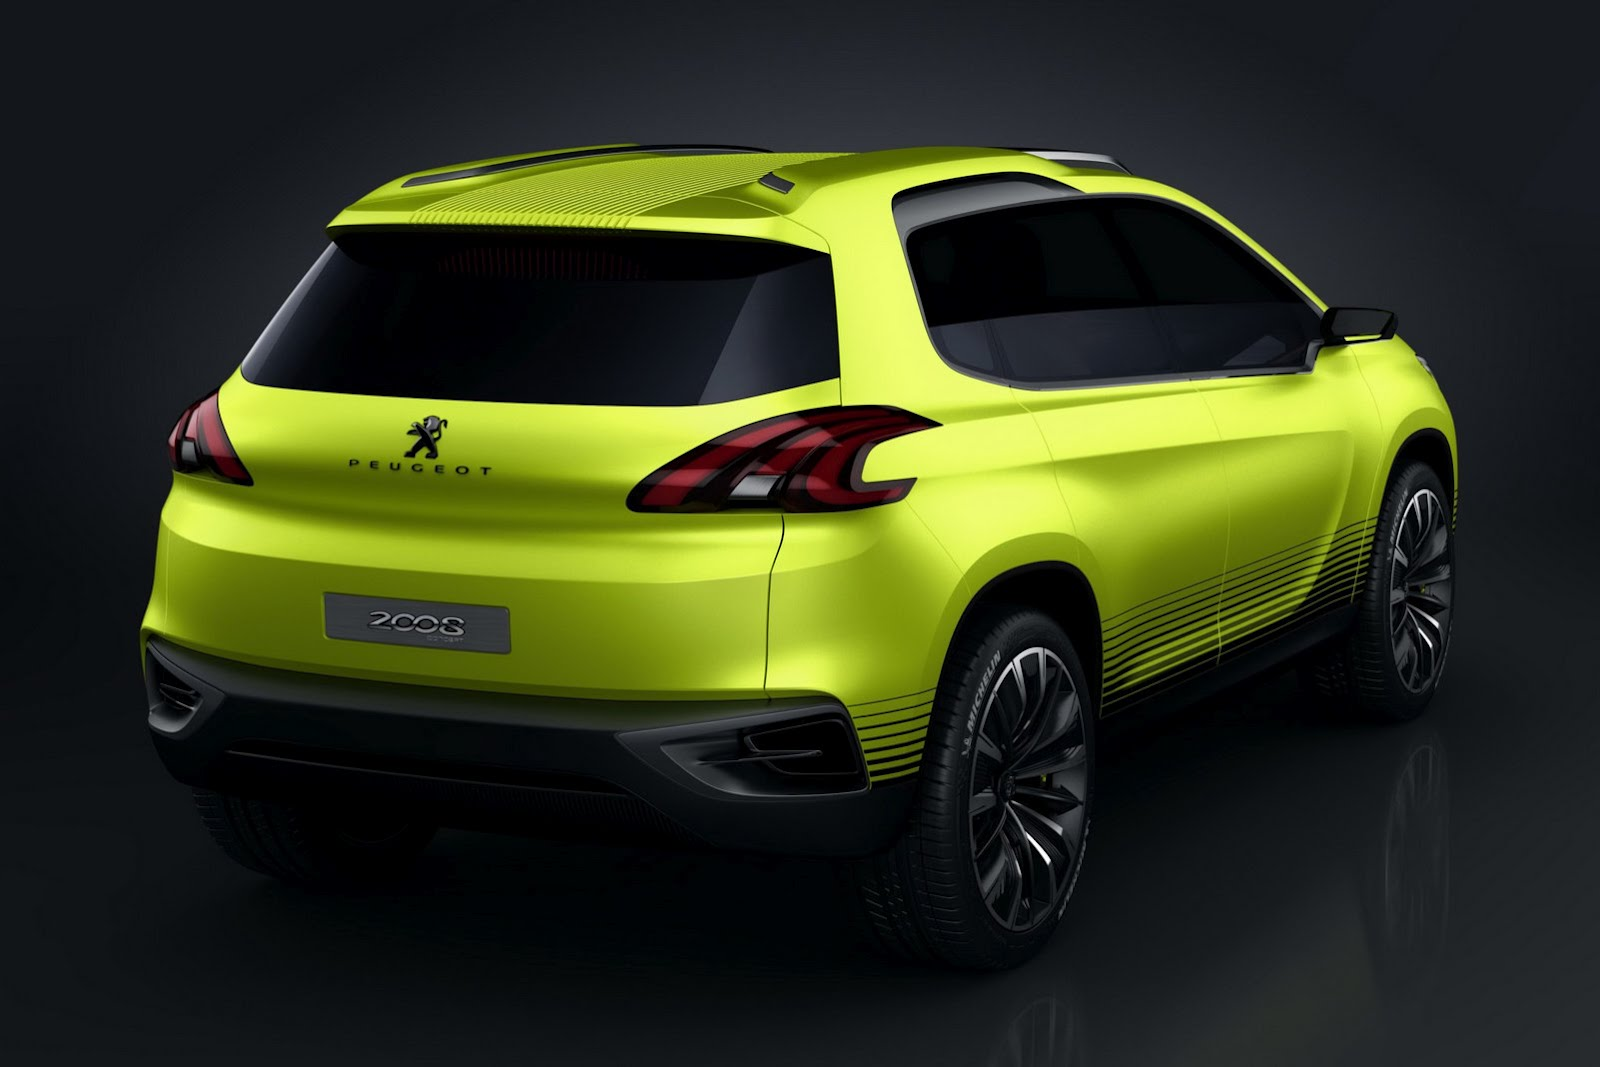 peugeot 2008 concept crossover model to rival nissan juke newsautomagz. Black Bedroom Furniture Sets. Home Design Ideas